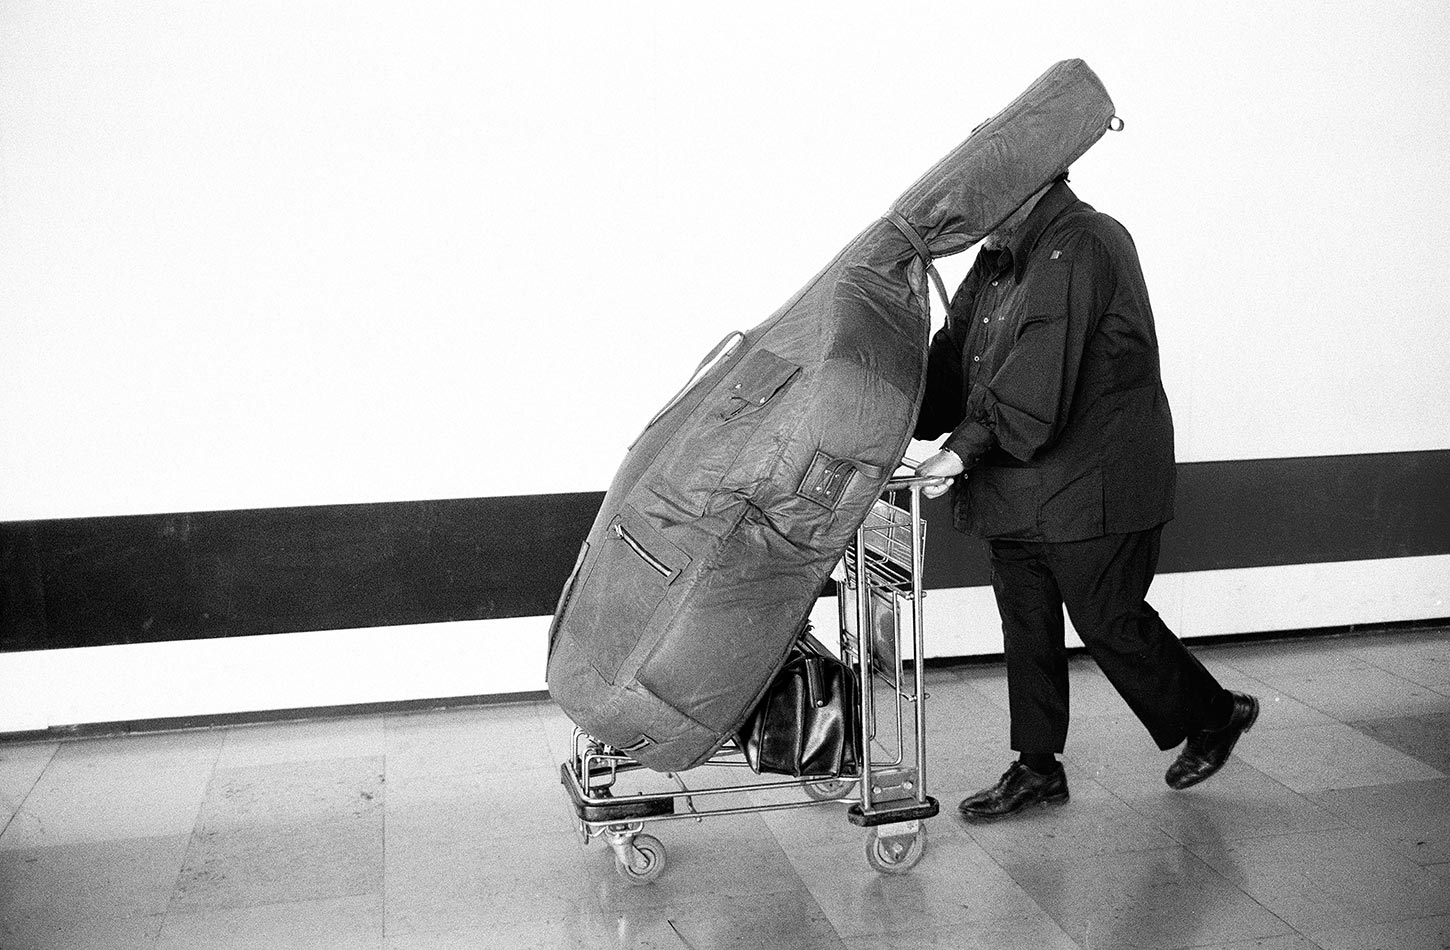 Charles Mingus. Marseille Provence Airport, France. August 19, 1976.